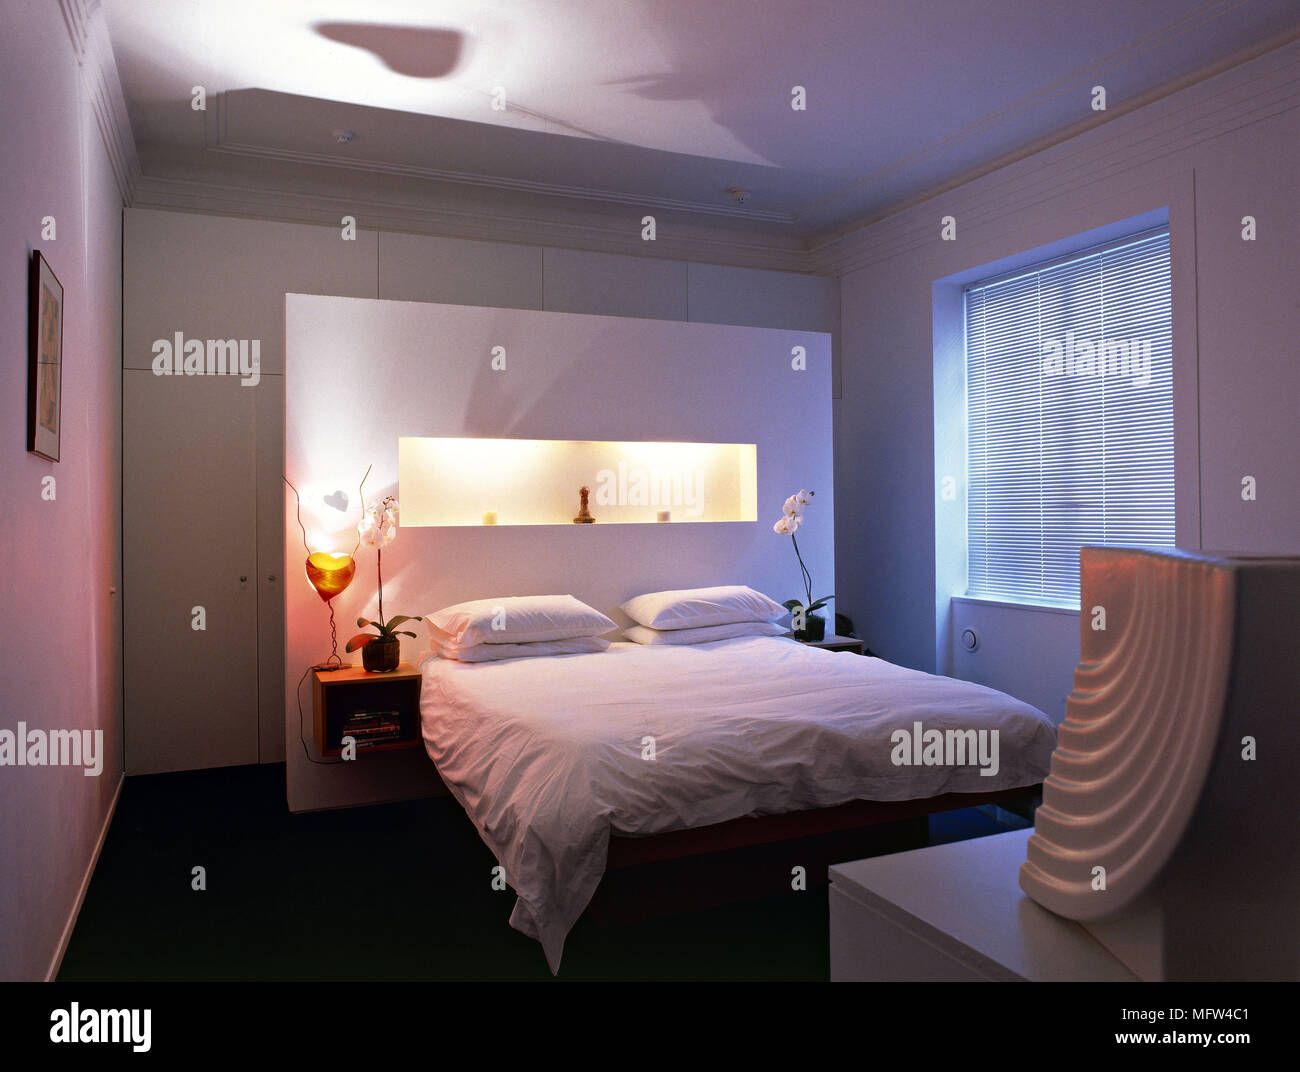 A modern bedroom with double bed lit alcove in freestanding wall ...